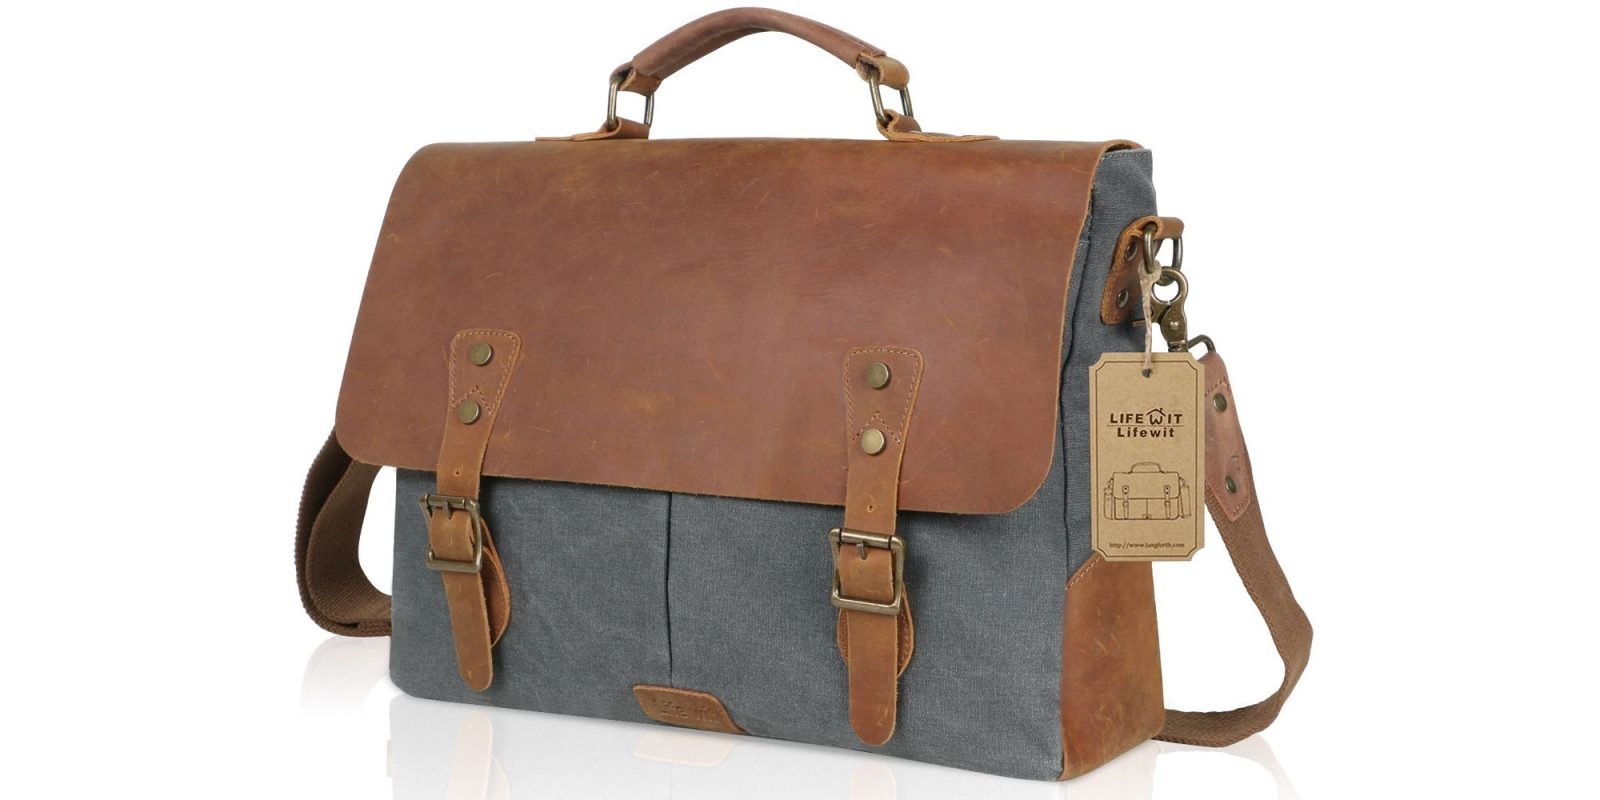 This genuine leather messenger bag is perfect for toting your MacBook at $20